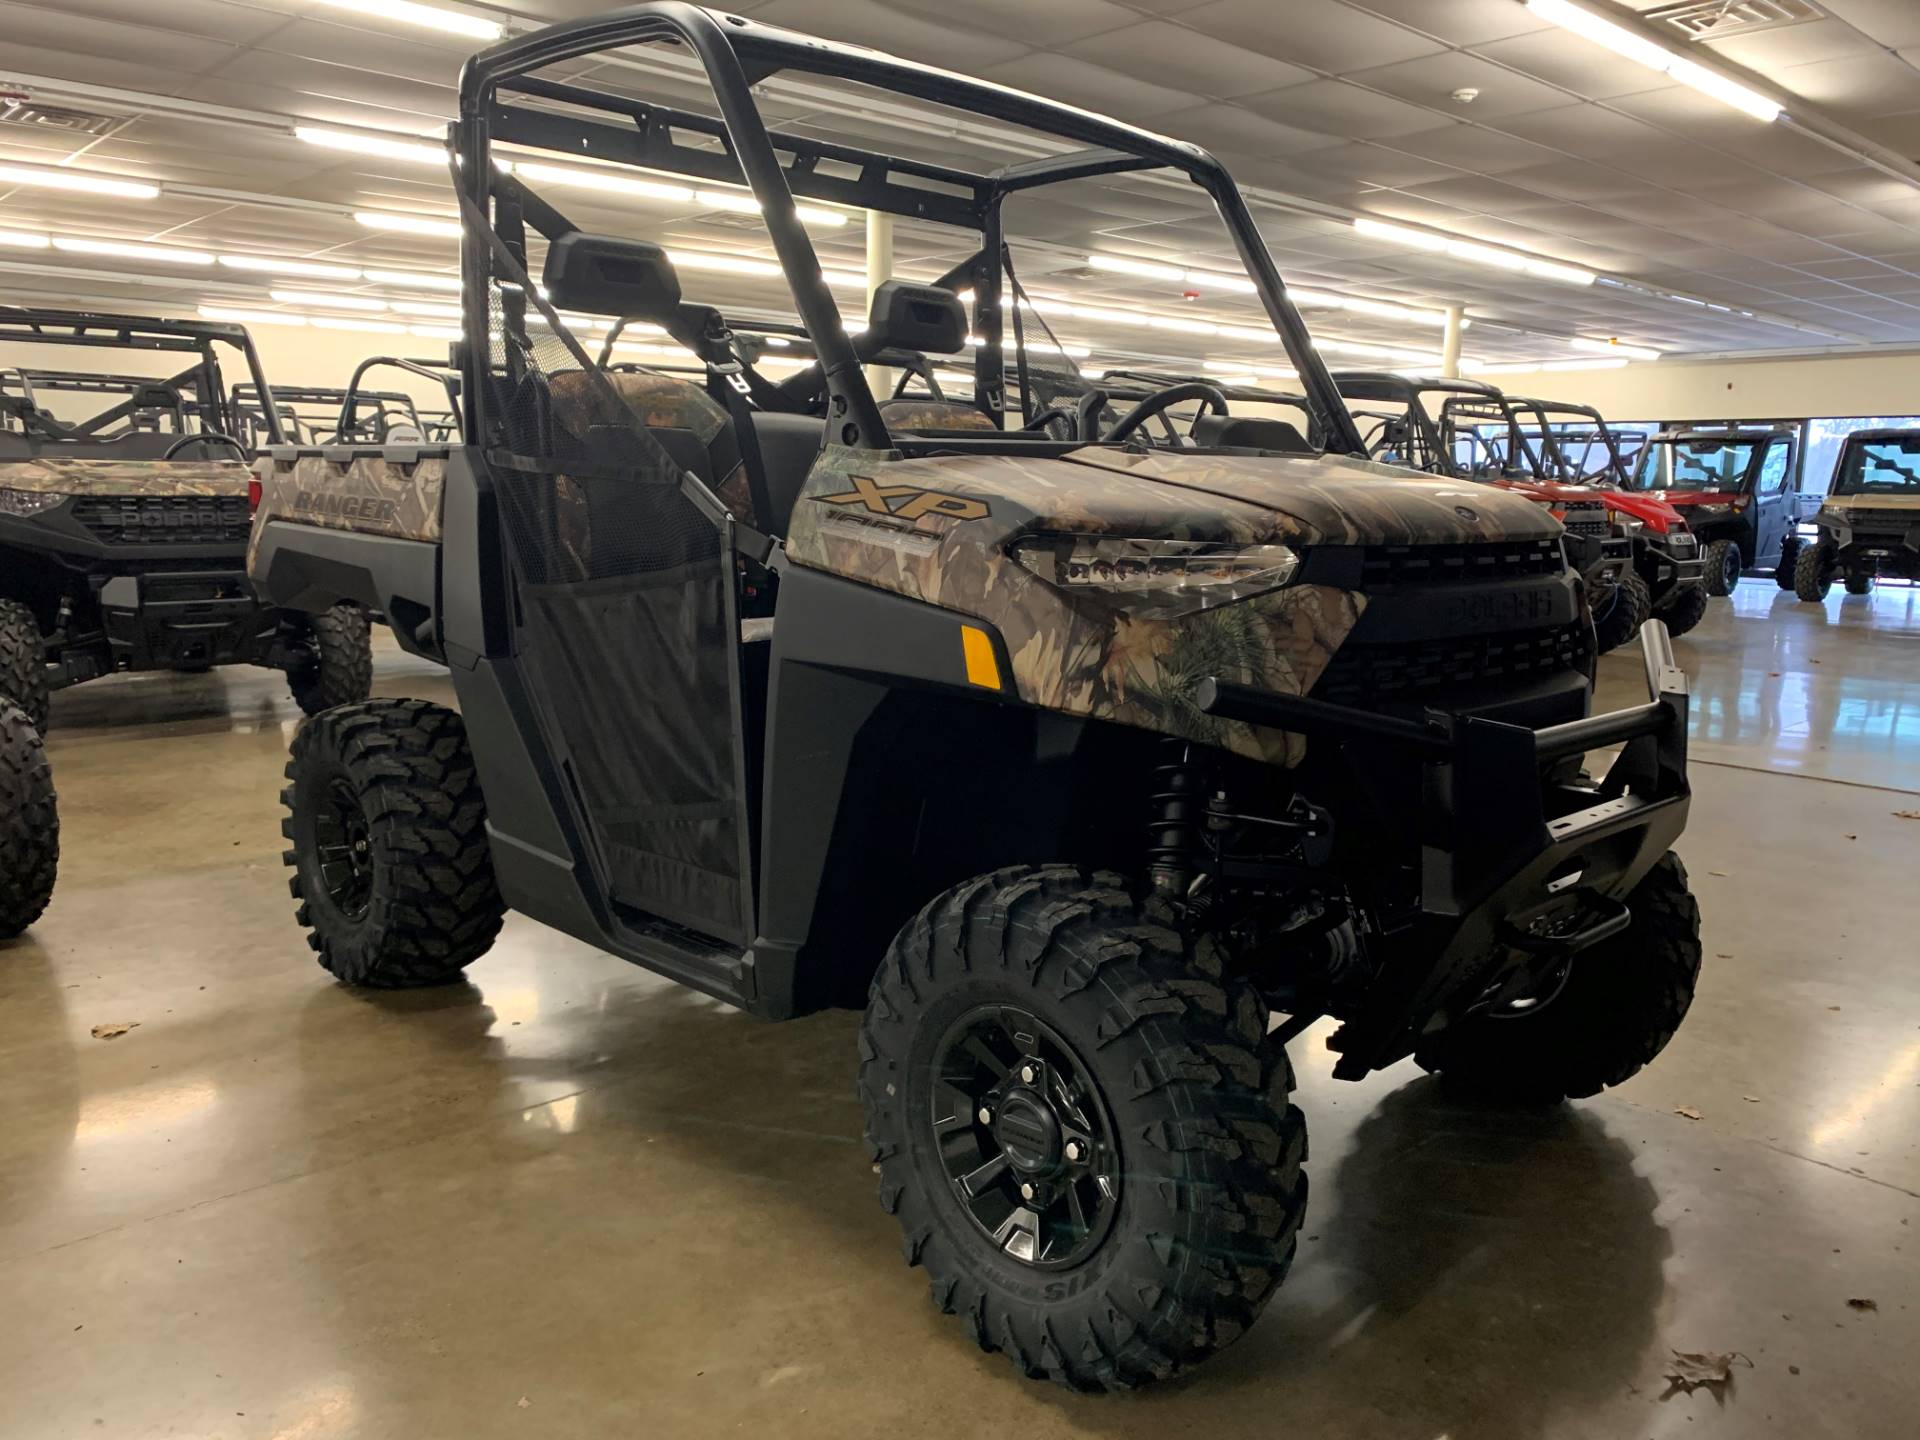 2020 Polaris Ranger XP 1000 Premium in Beaver Falls, Pennsylvania - Photo 3